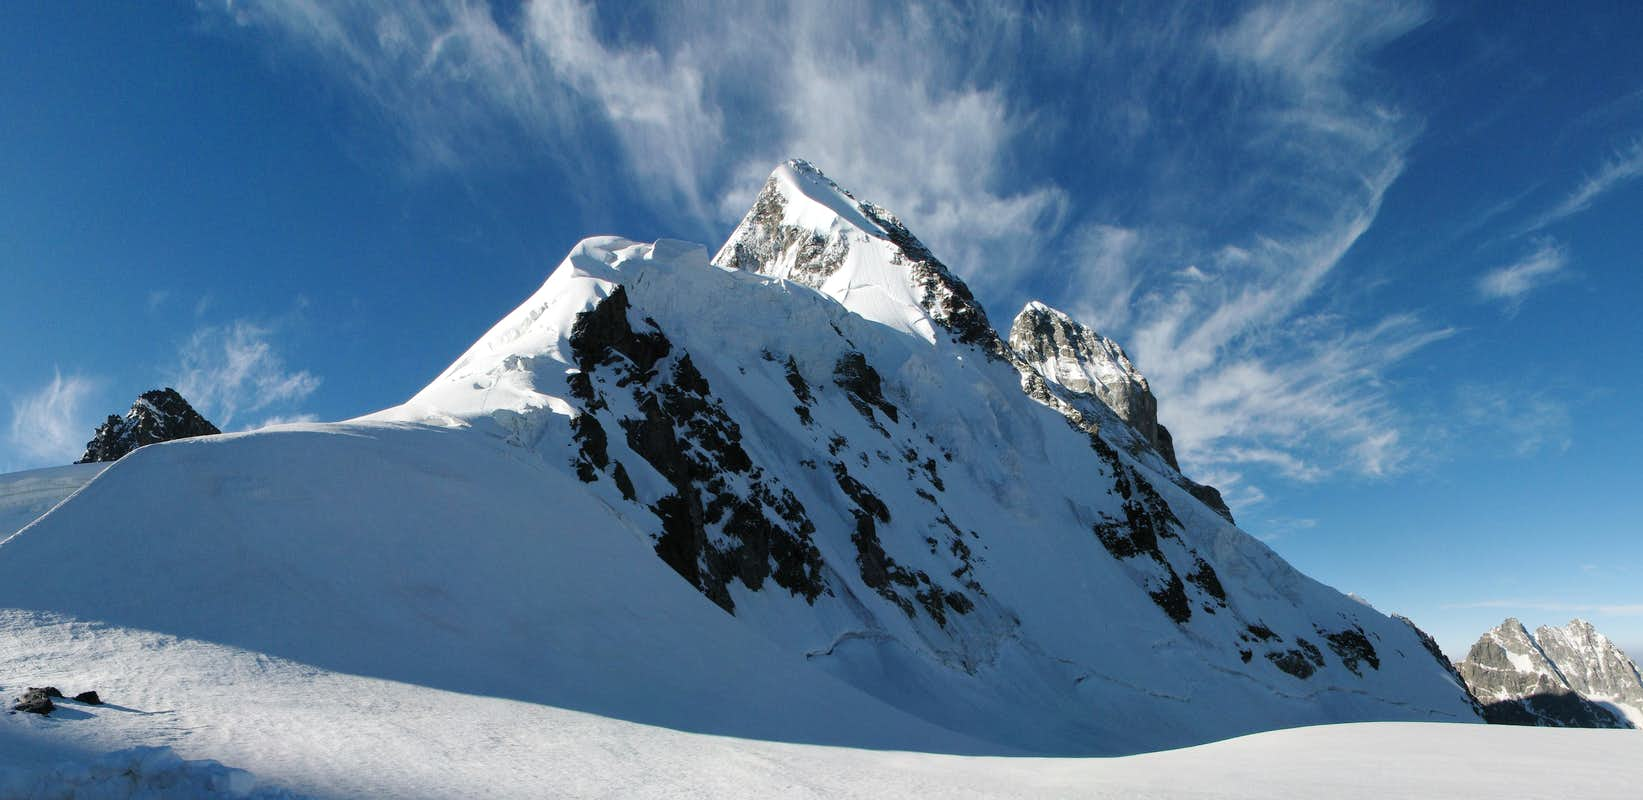 Ushba from Ushba pass : Photos, Diagrams & Topos : SummitPost